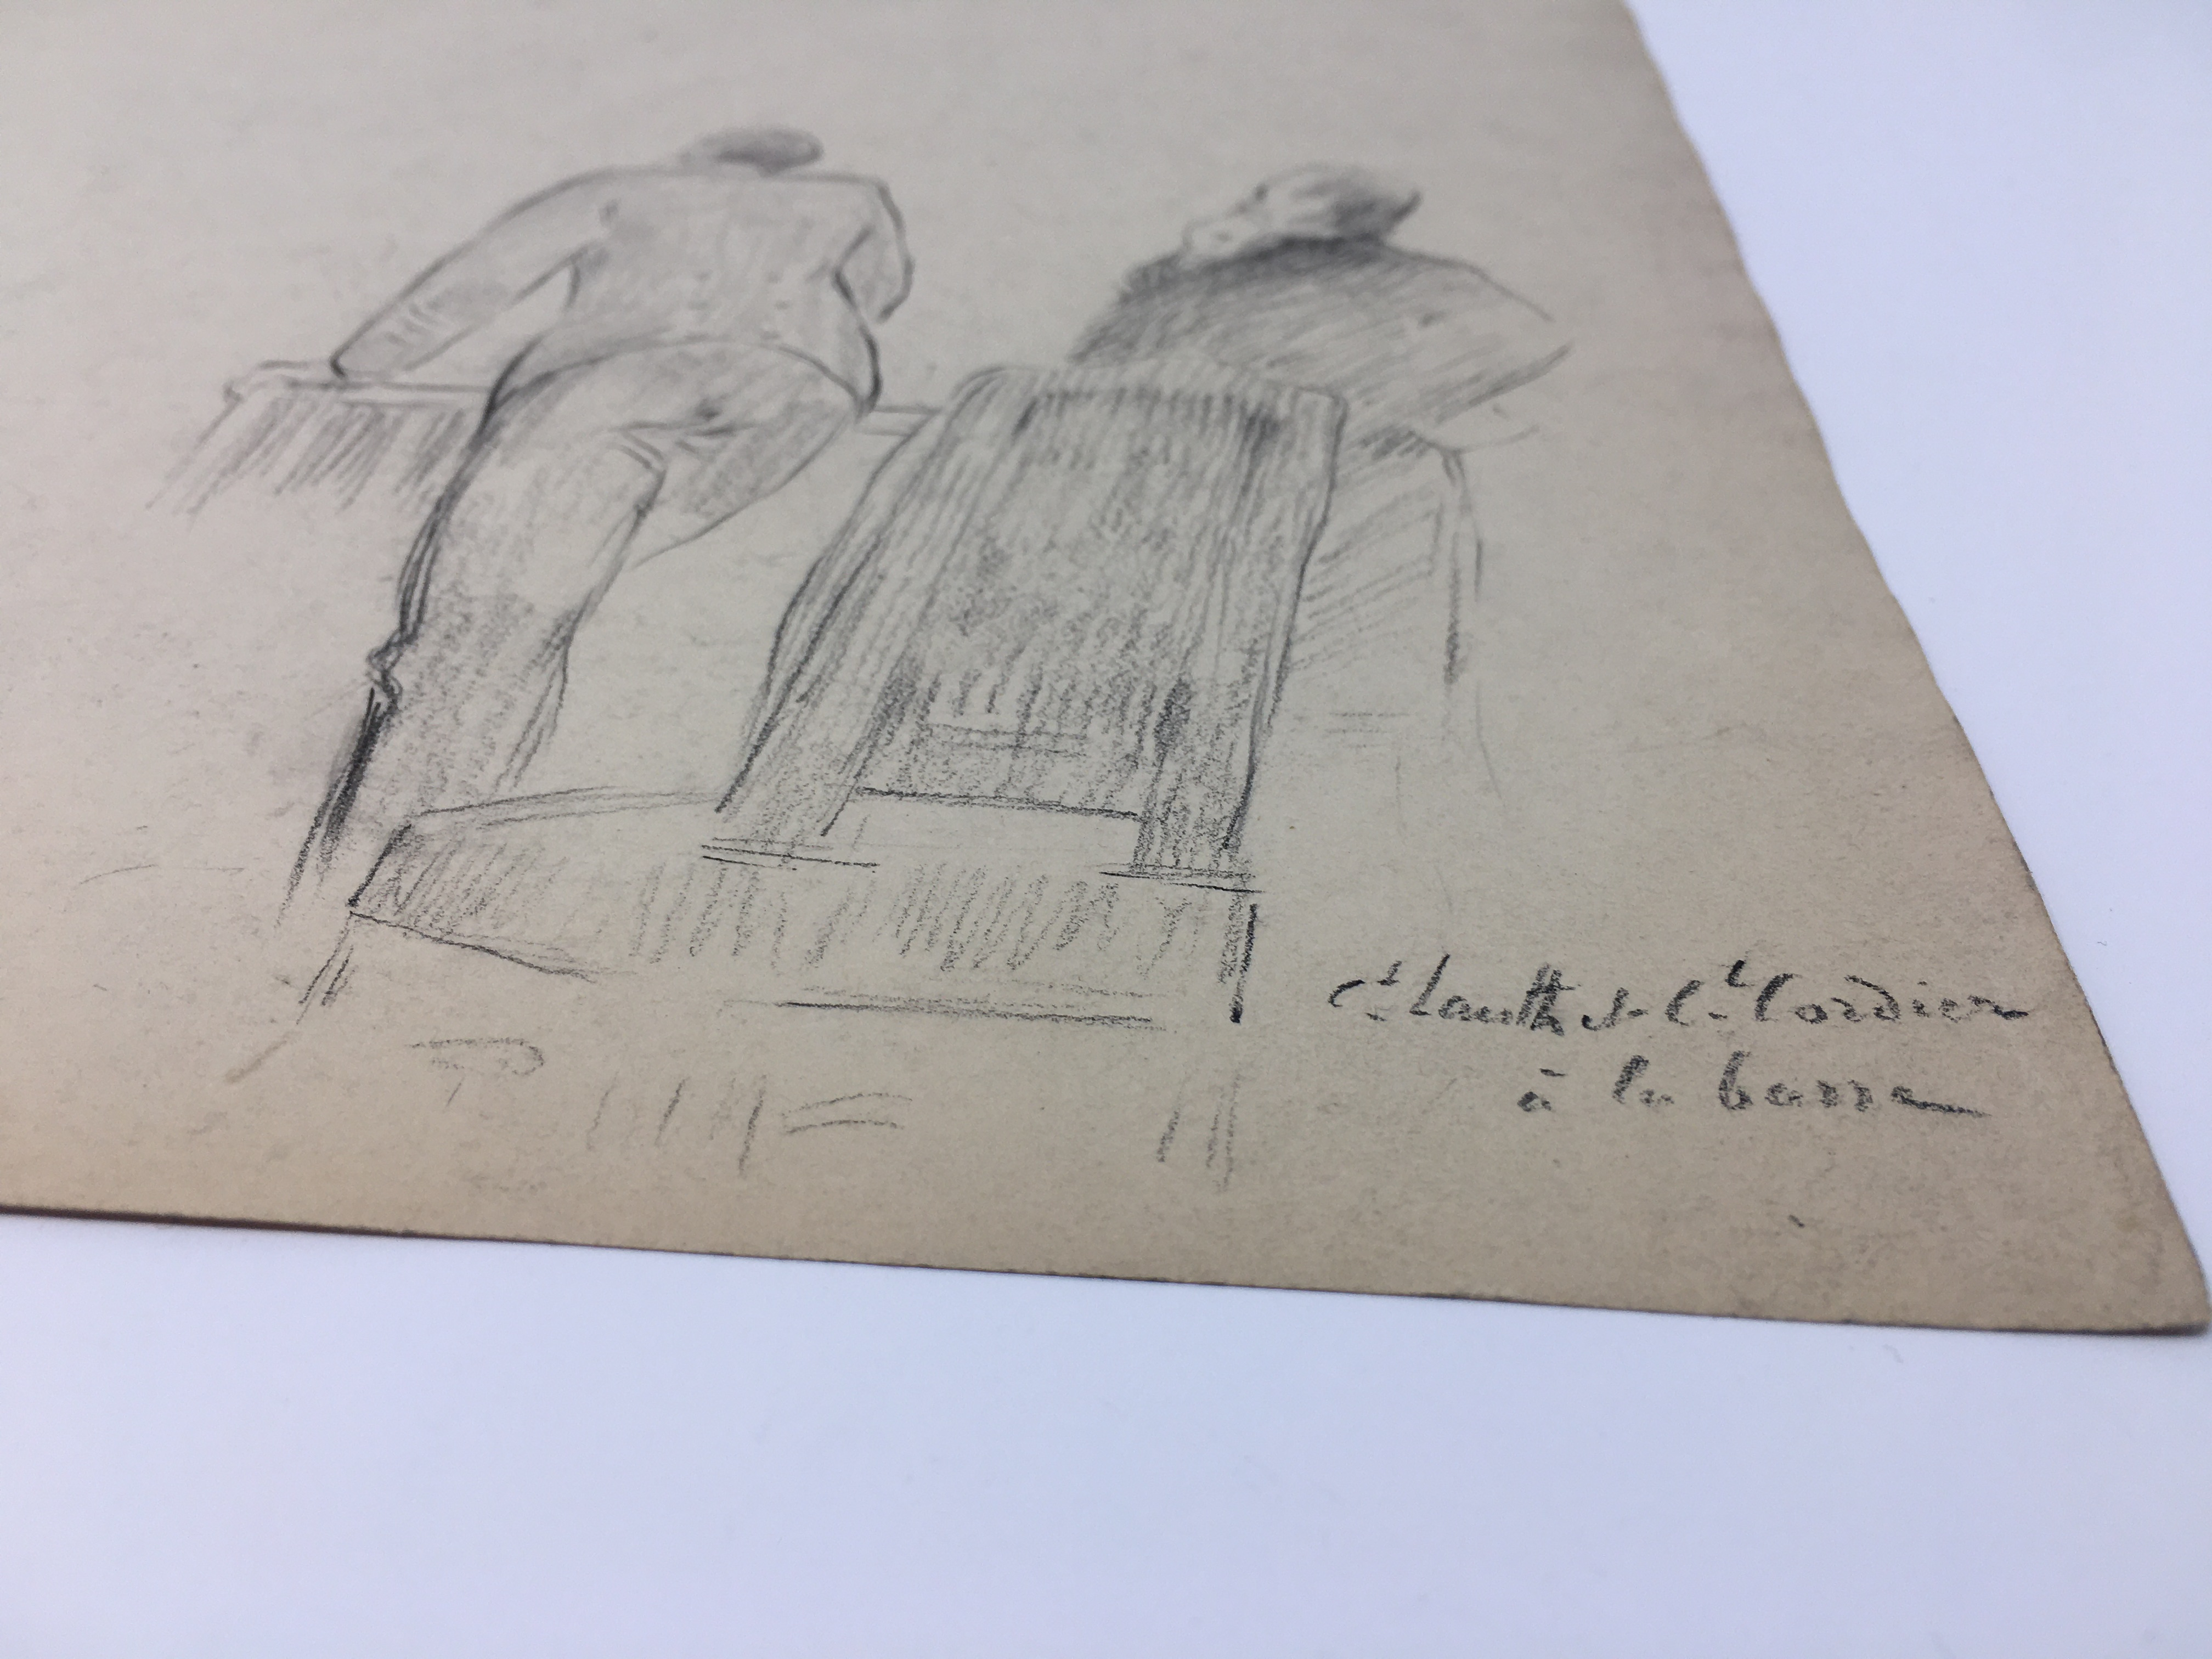 J'Accuse Newspaper, Emile Zola Quote, Signed Dreyfus Portrait, Rare Trial Drawings & Schwartzkoppen - Image 52 of 74